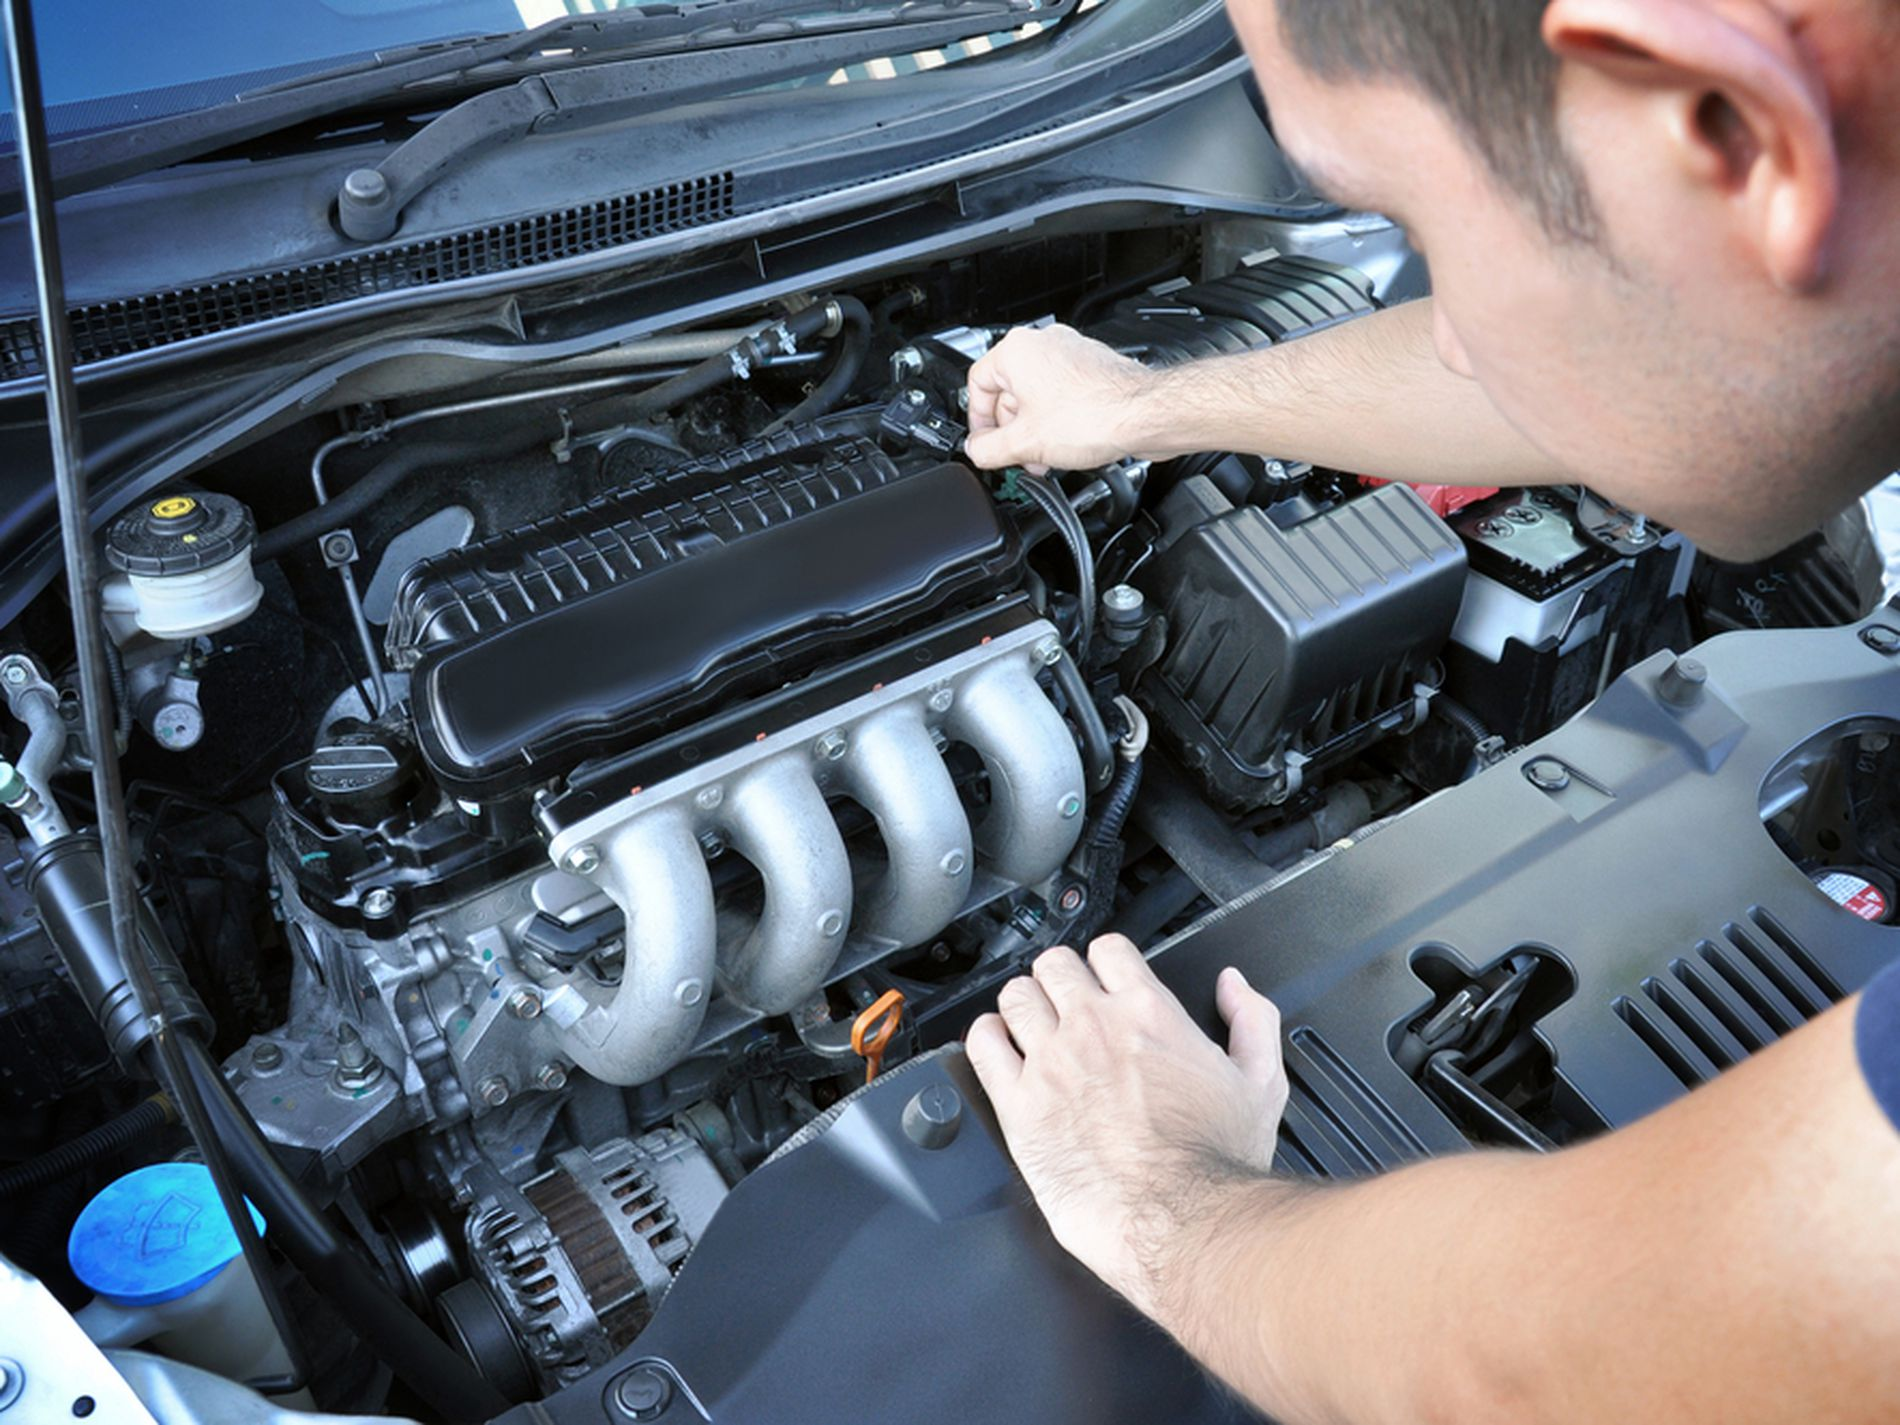 Automotive Service Centre Business for Sale in South East